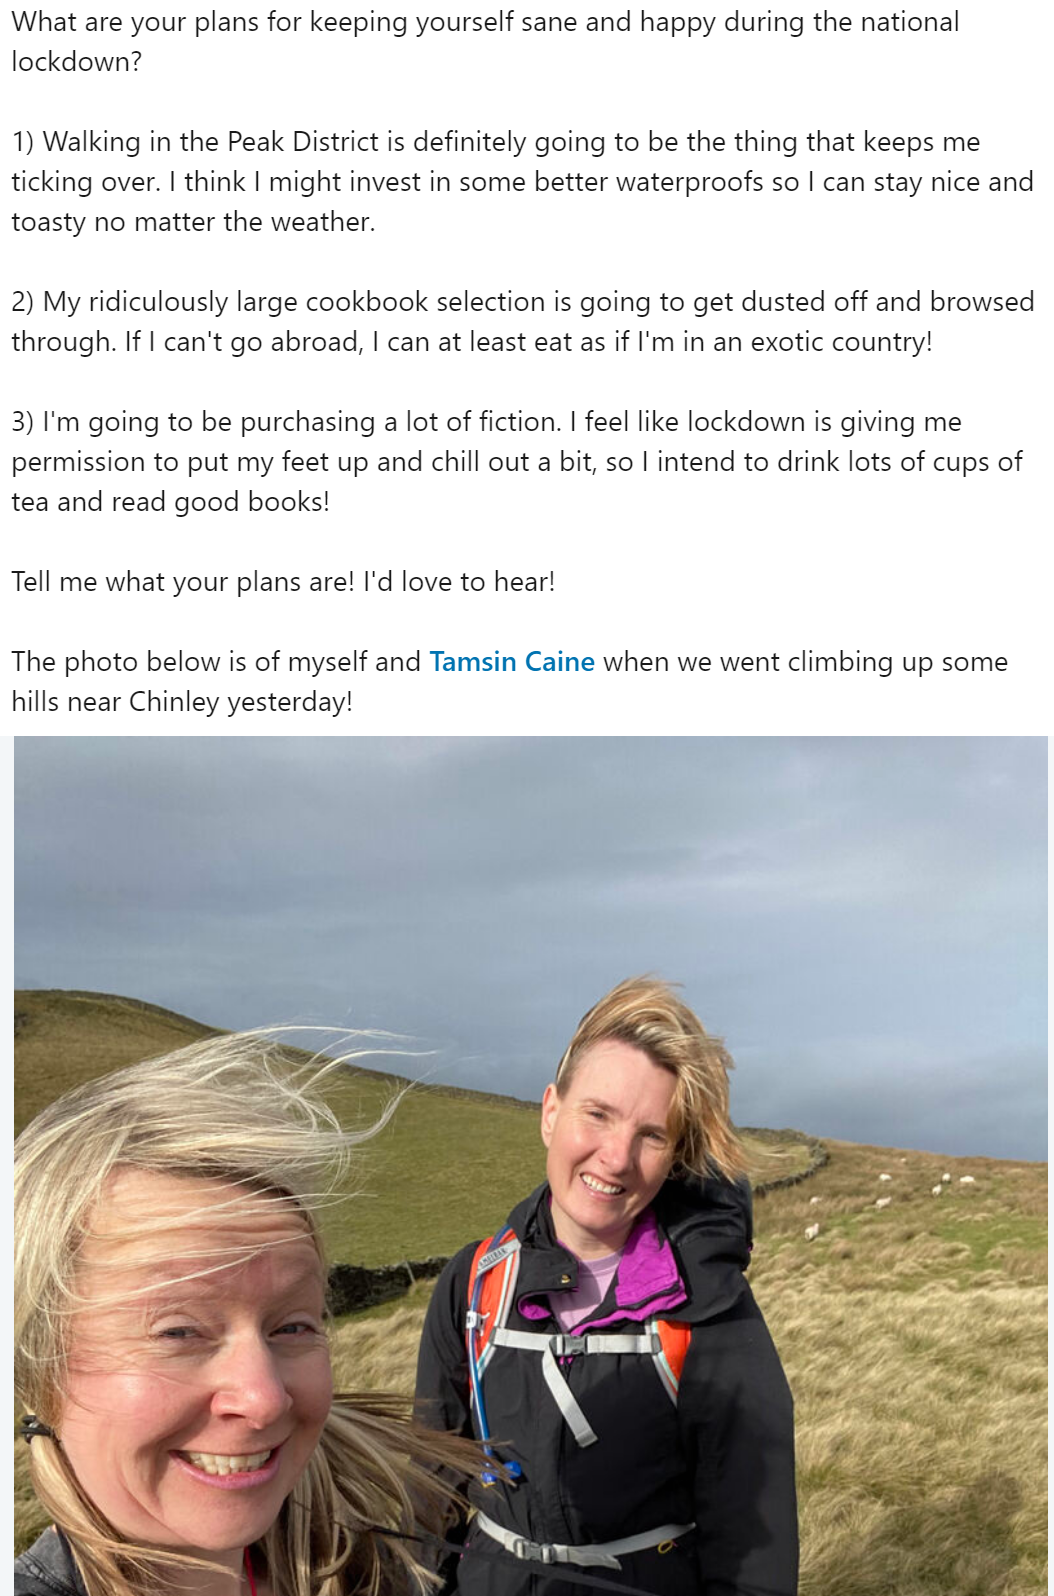 Katya Willems LinkedIn post with a picture of Katya and a friend Tamsin in the Peak District.